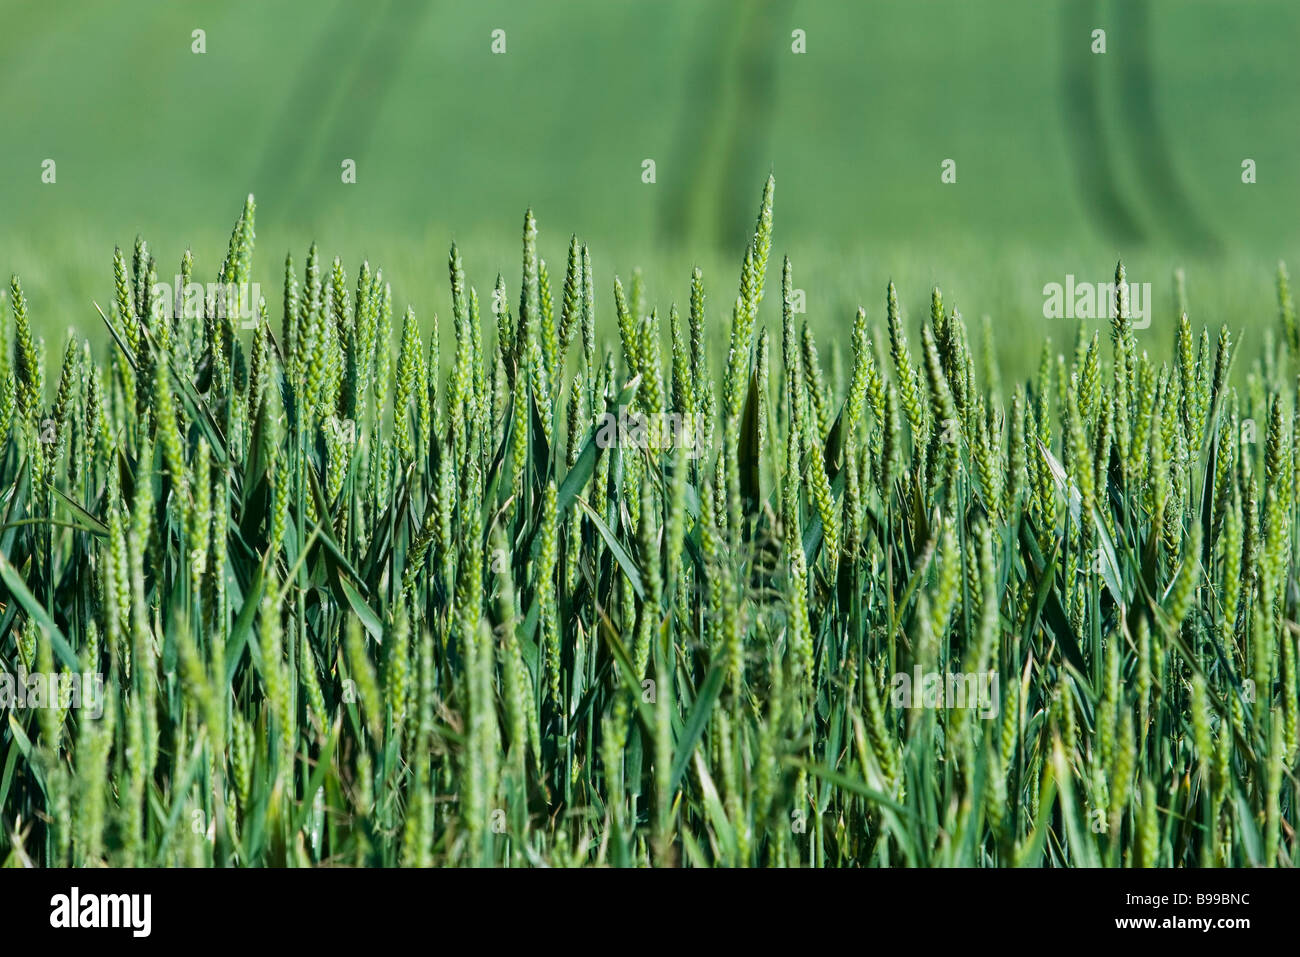 Green wheat growing in field, close-up - Stock Image